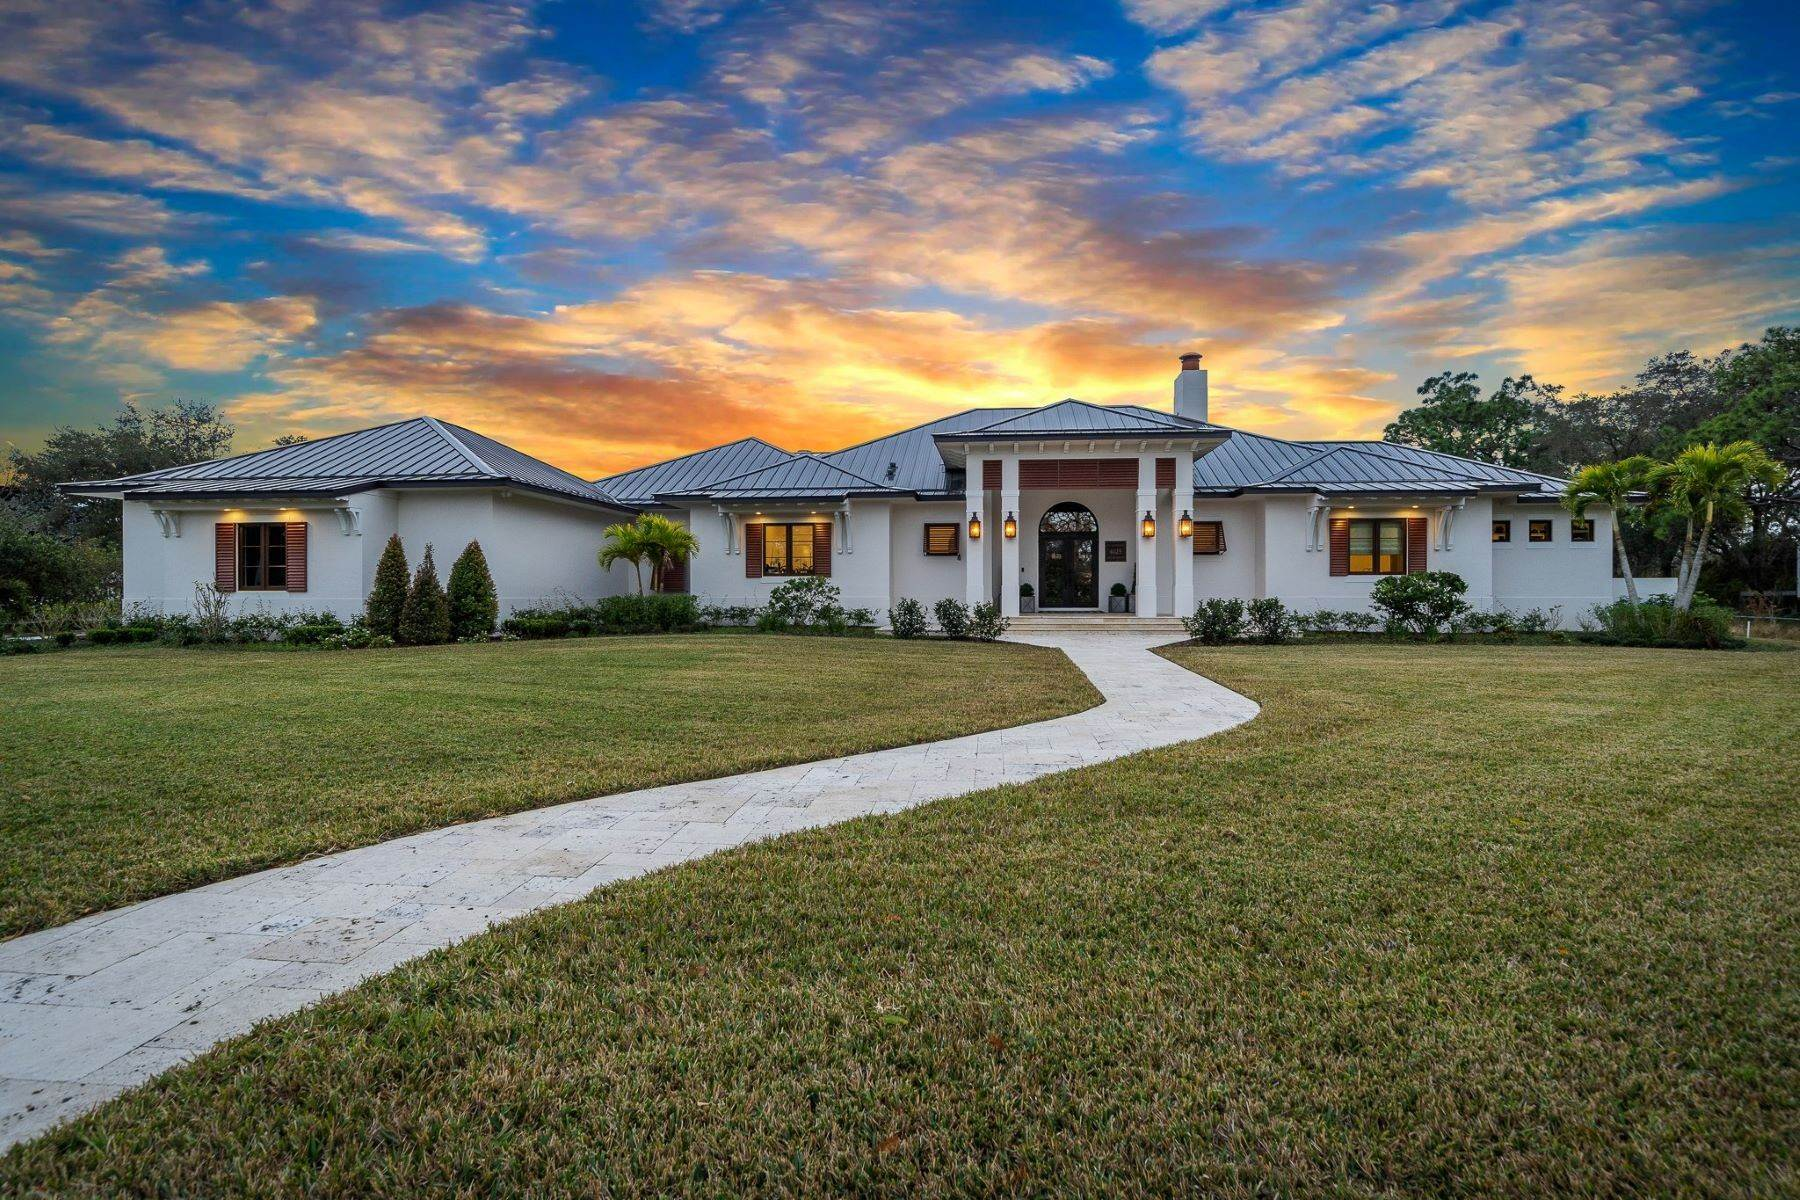 Single Family Homes for Sale at 4025 Lake Washington Road, Melbourne, FL 4025 Lake Washington Road Melbourne, Florida 32934 United States